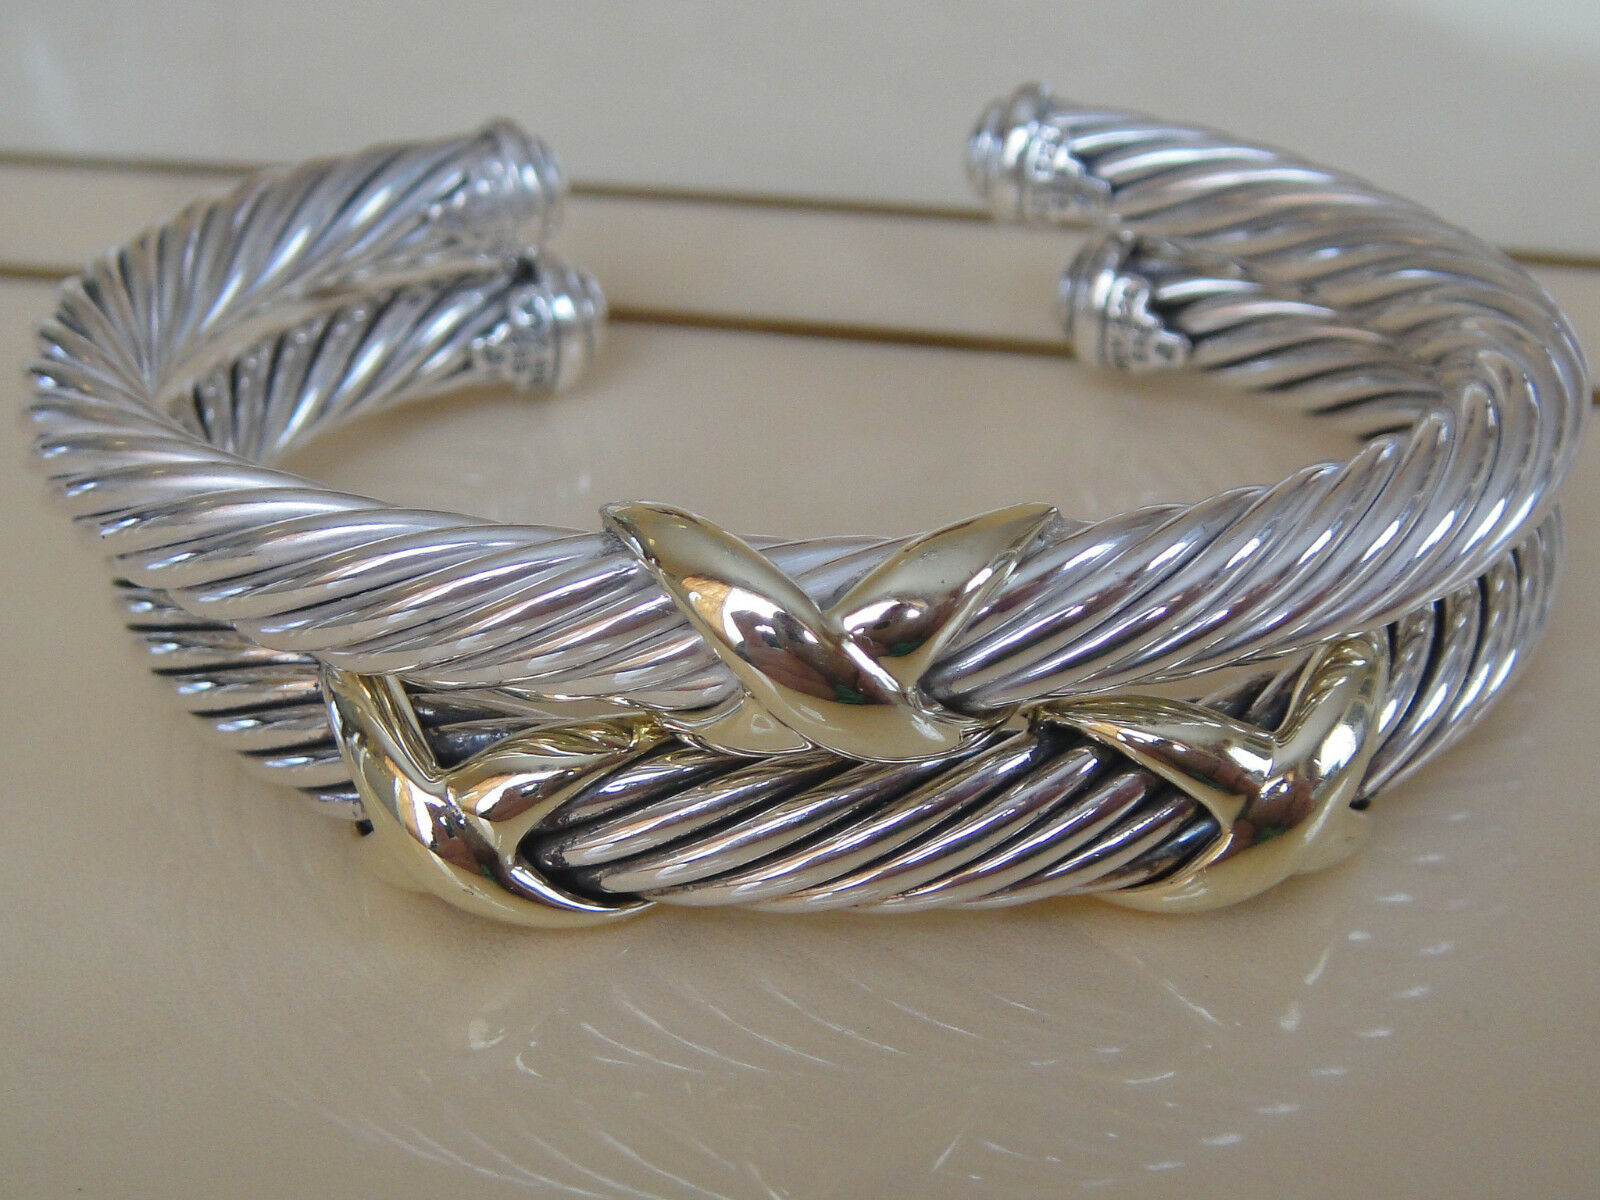 775 DAVID YURMAN 14K gold, SS SINGLE STATION X BRACELET 7mm SMALL